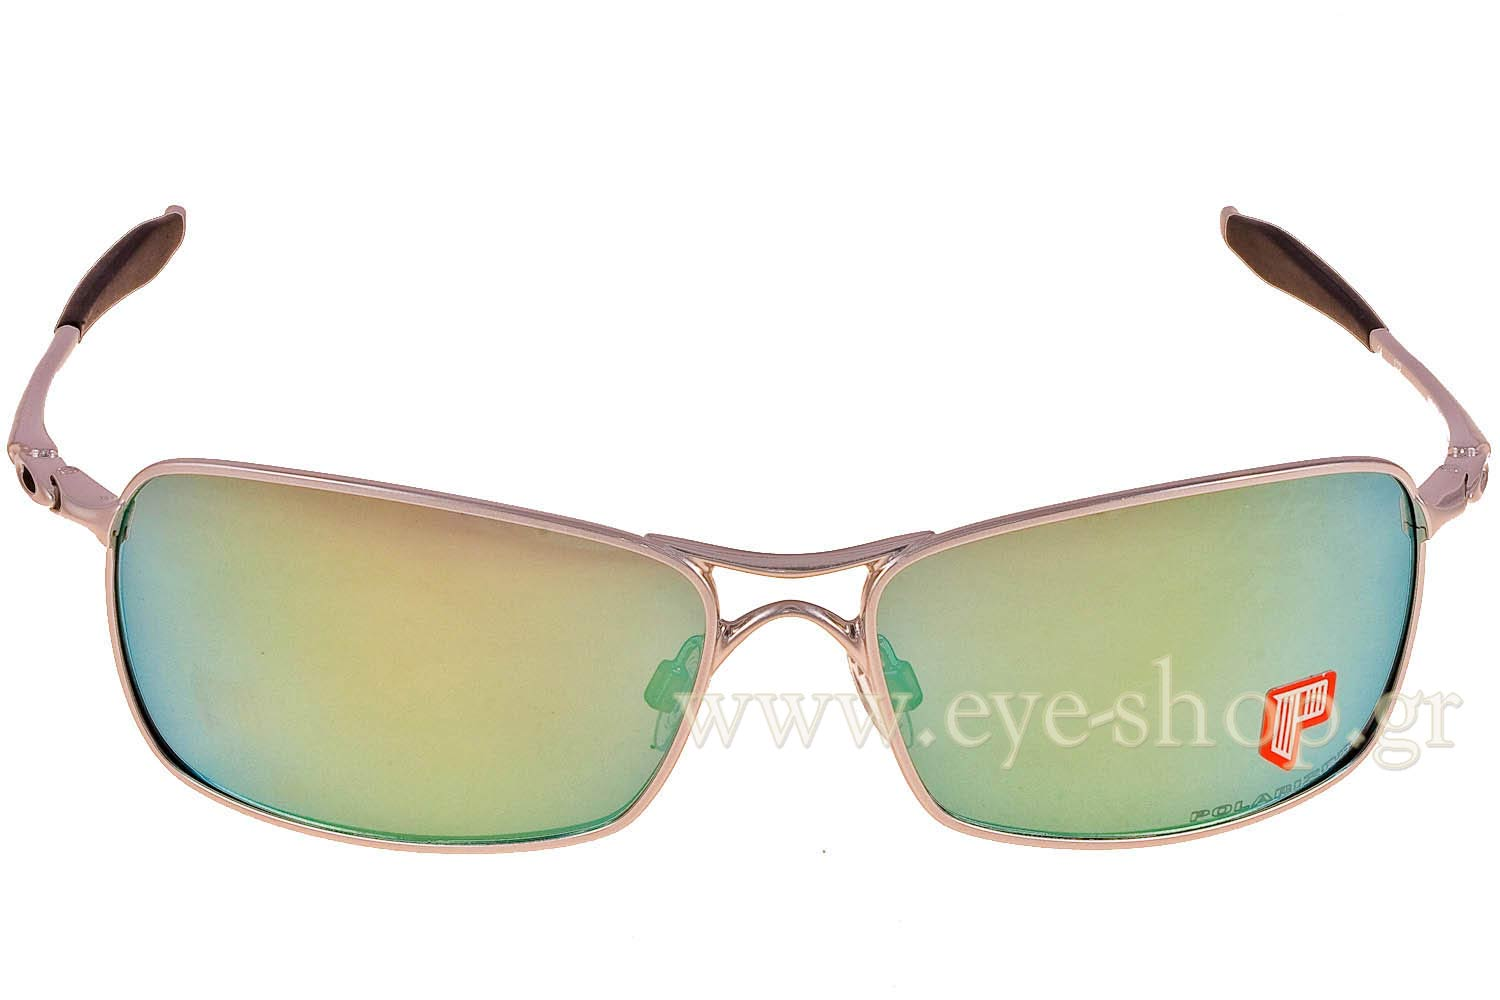 70f2848c70 ... Emerald Iridium Polarized. Oakley Crosshair 2.0 4044